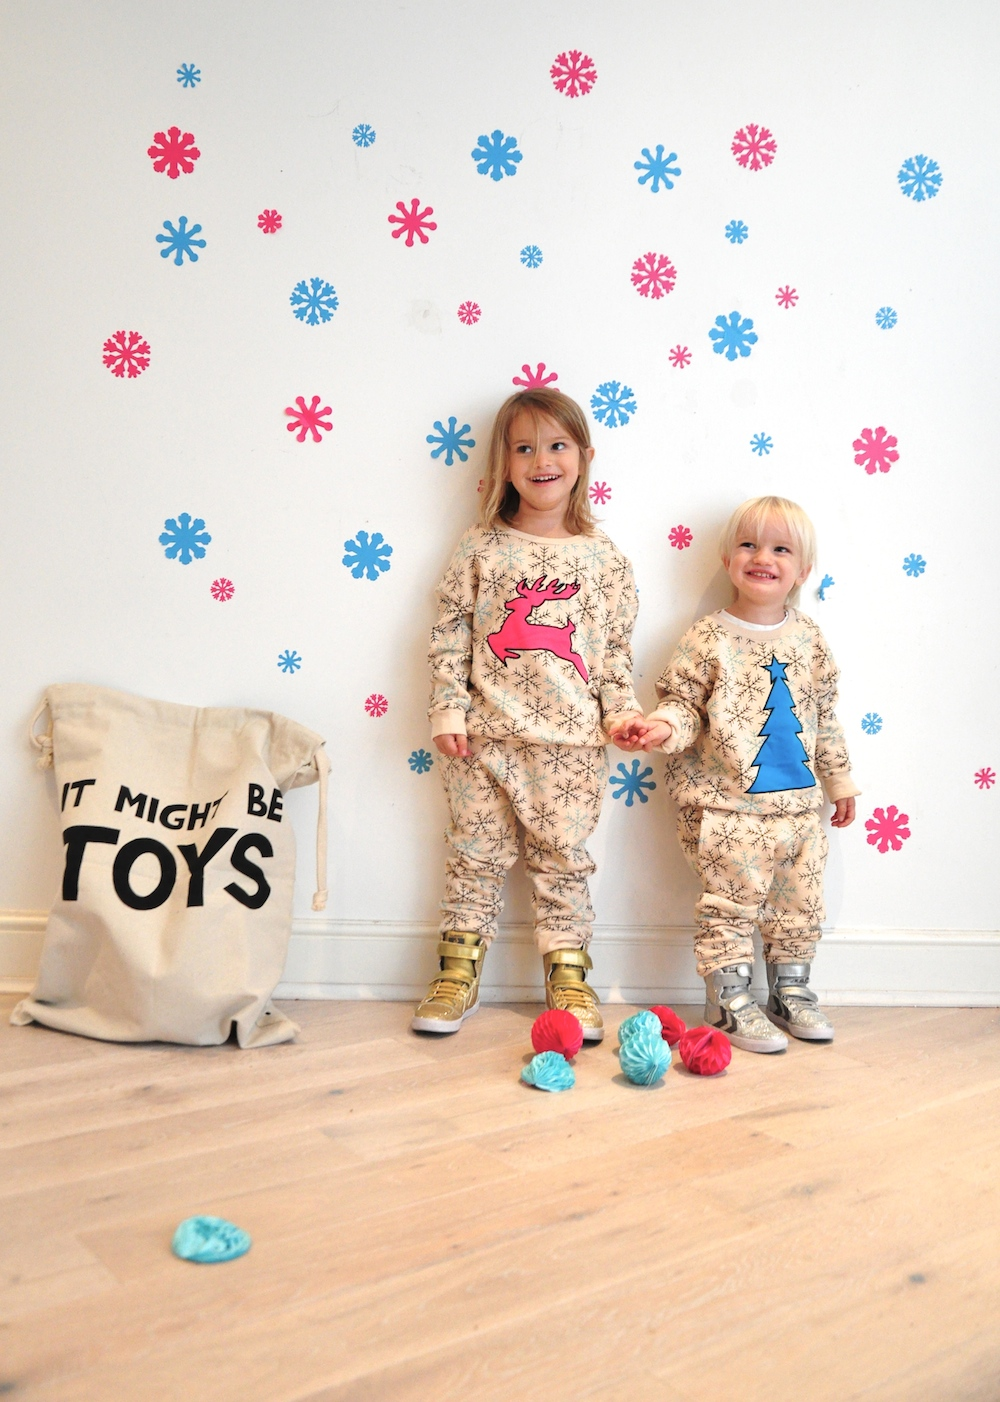 Gardner_and_the_gang_harrods_miniharrods_Christmas_tellkiddo_kidsen_33